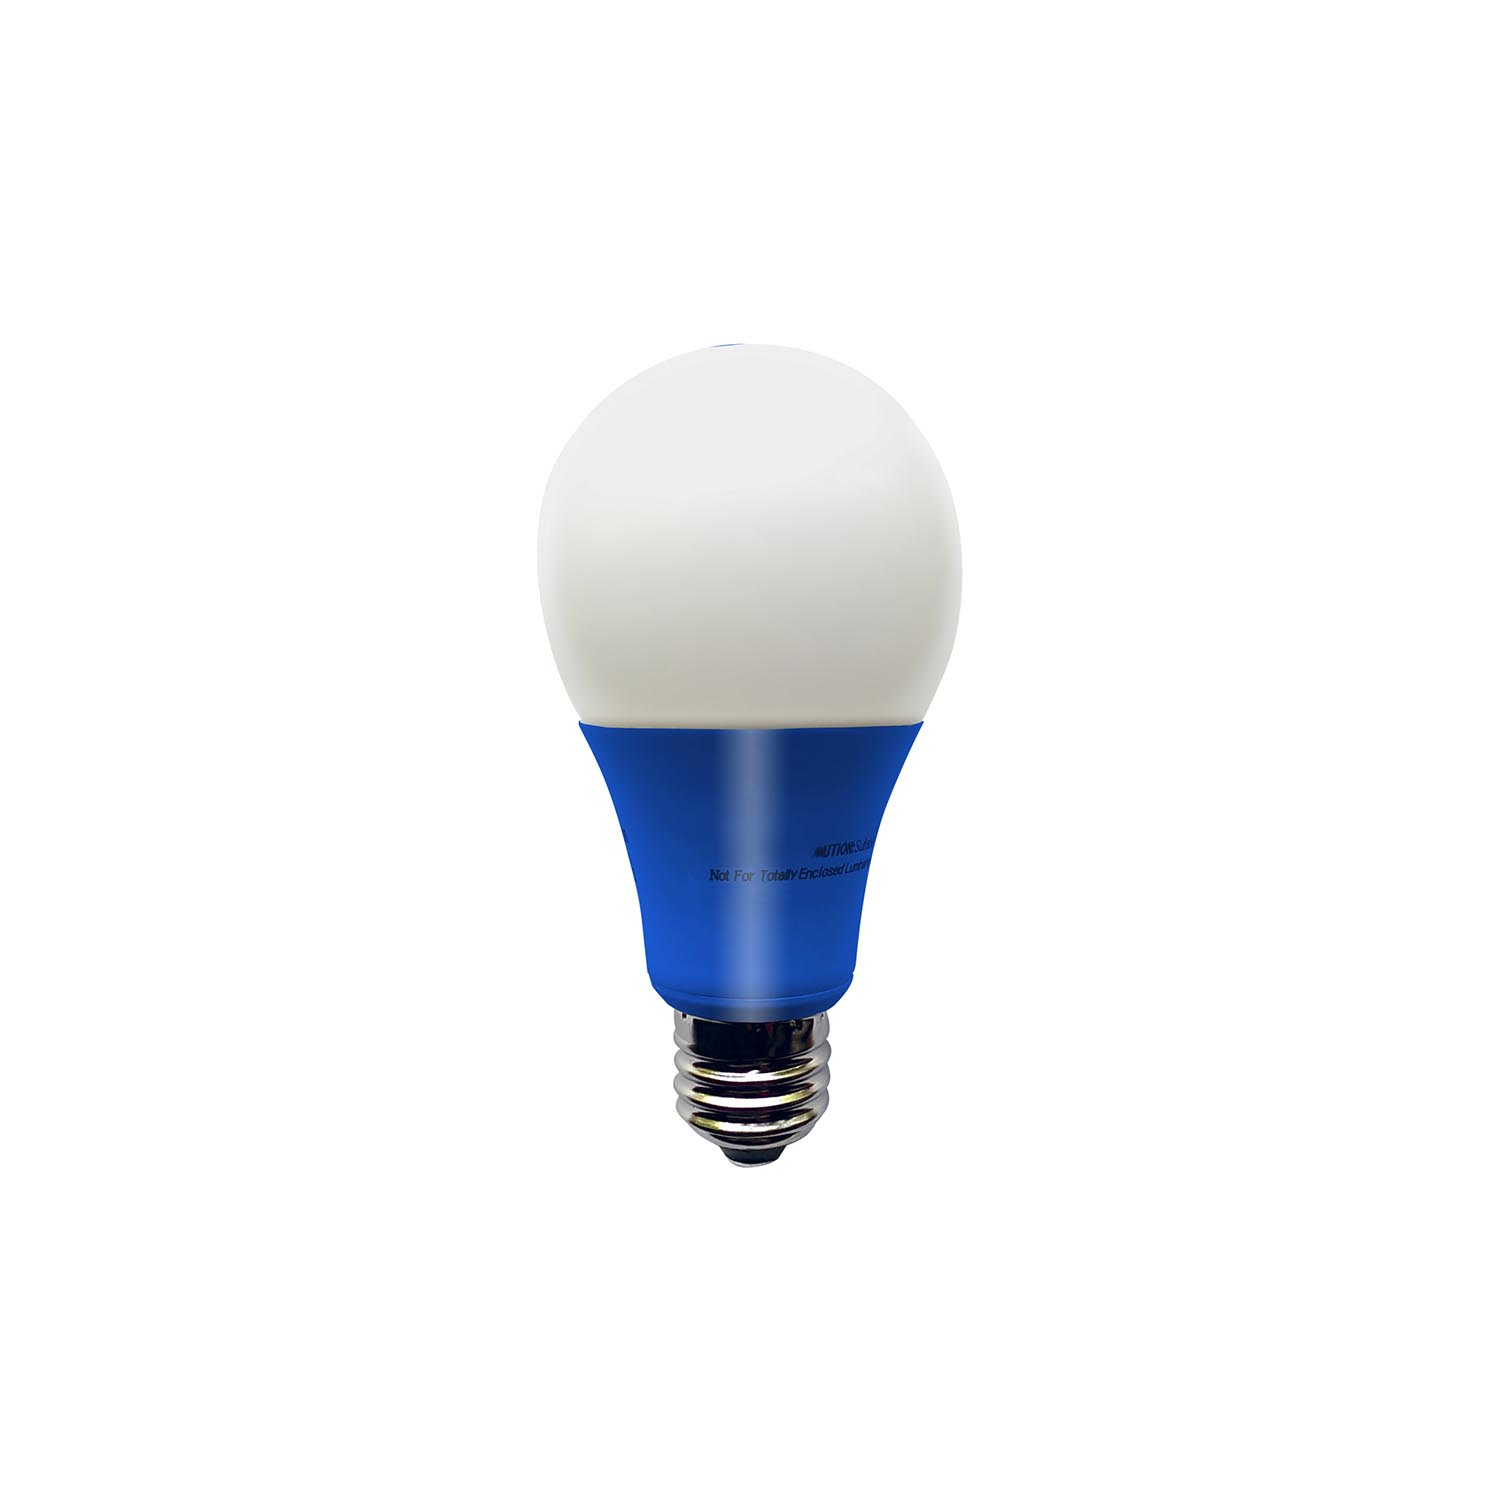 Illumin8 I8a Deco Blue A19 Led Light Bulb Non Dimmable 4 5 Watt Great Brands Outlet